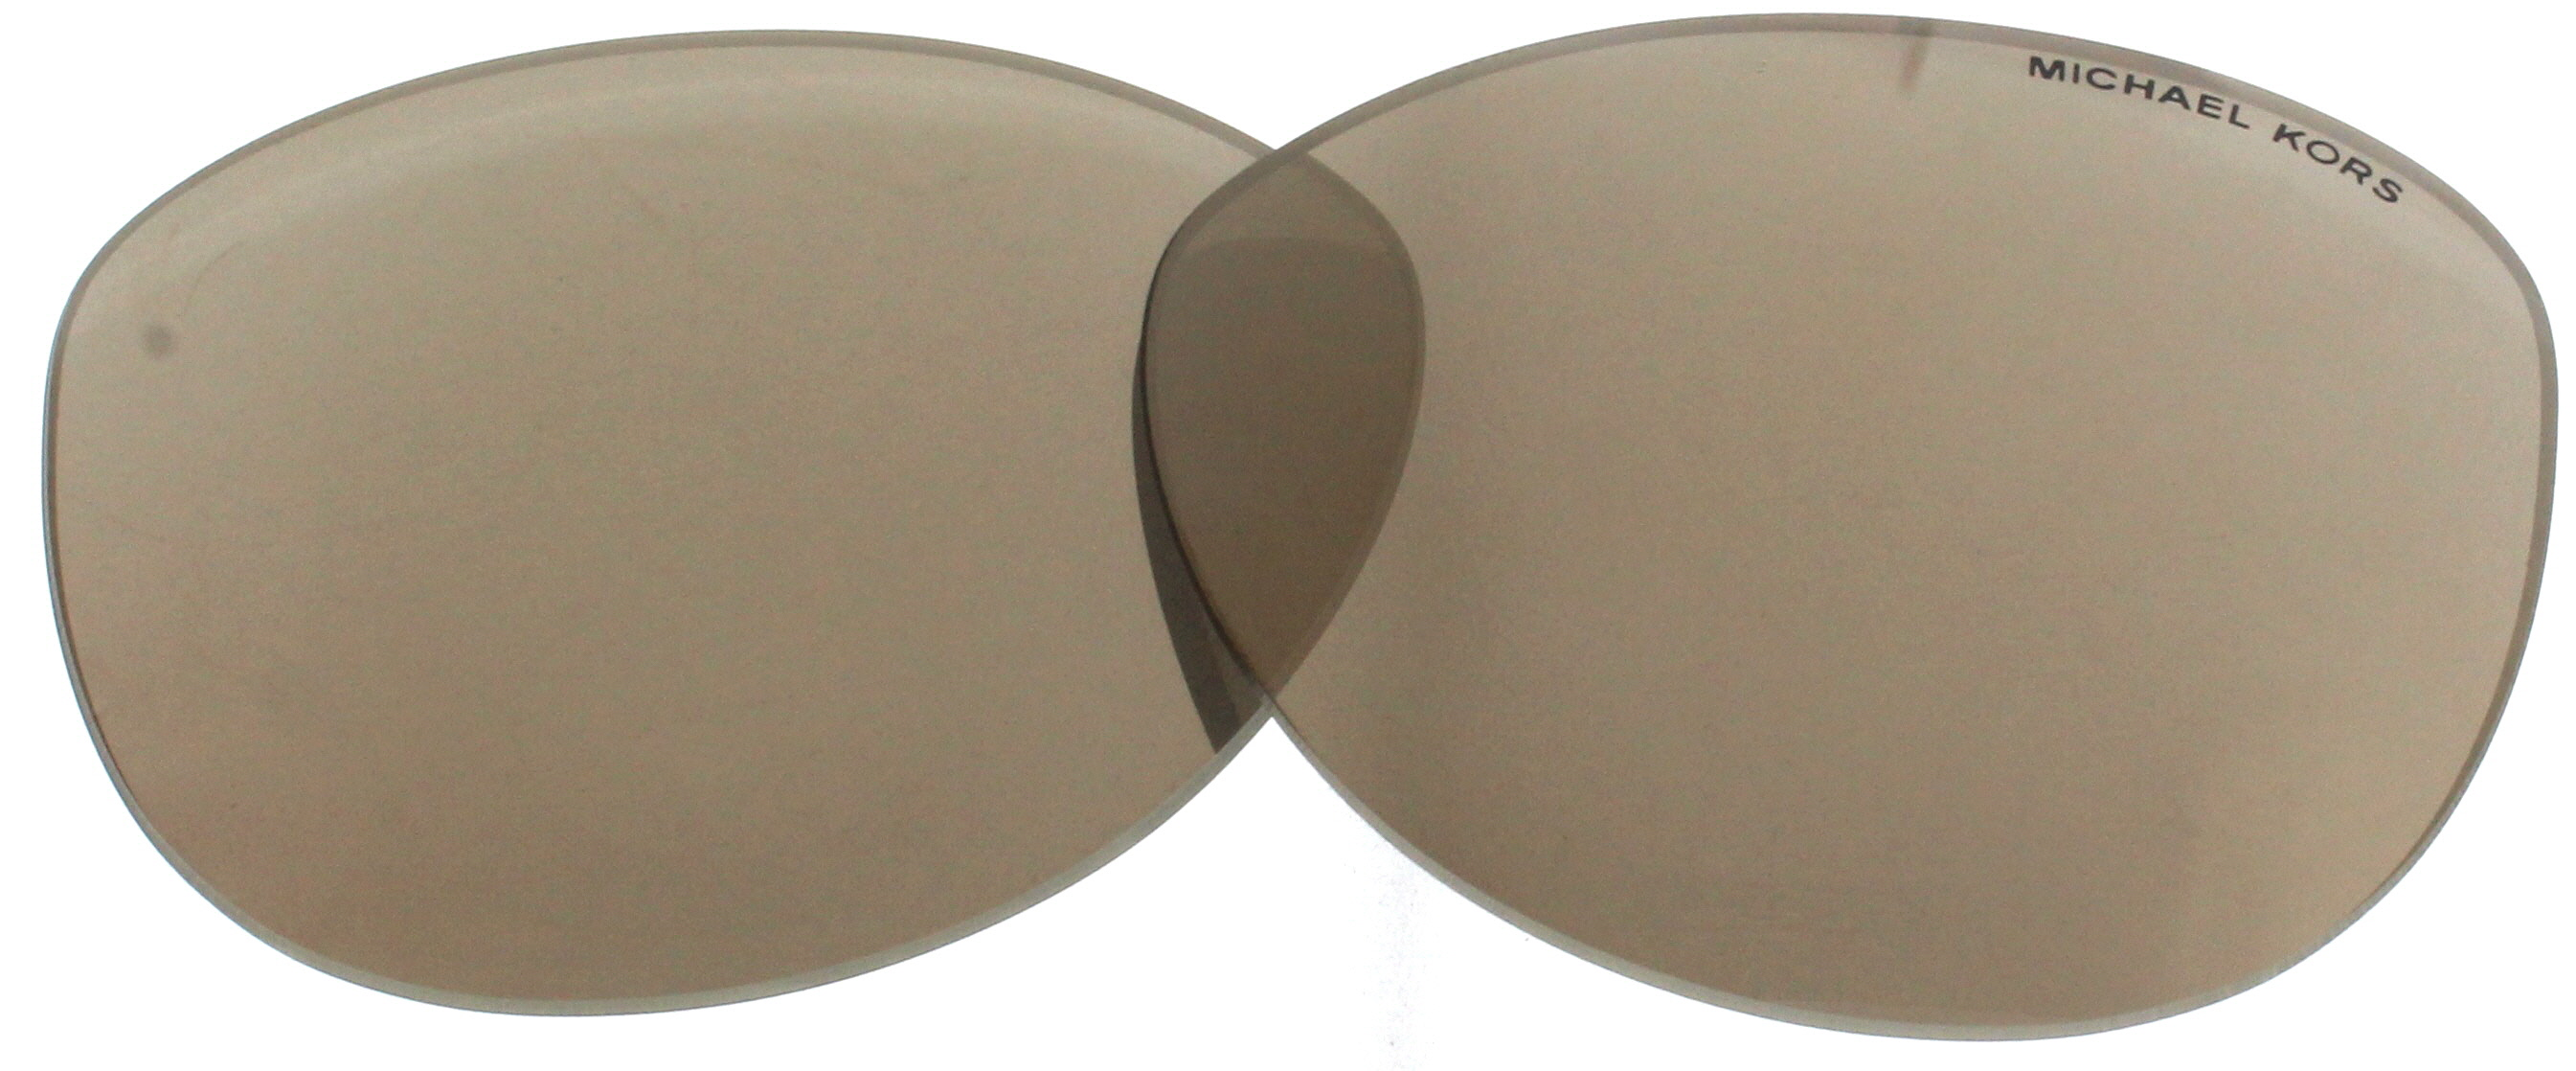 9711b0599ad5 Image is loading MICHAEL-KORS-Replacement-Lenses-MK1020-Bronze-Mirror-56MM